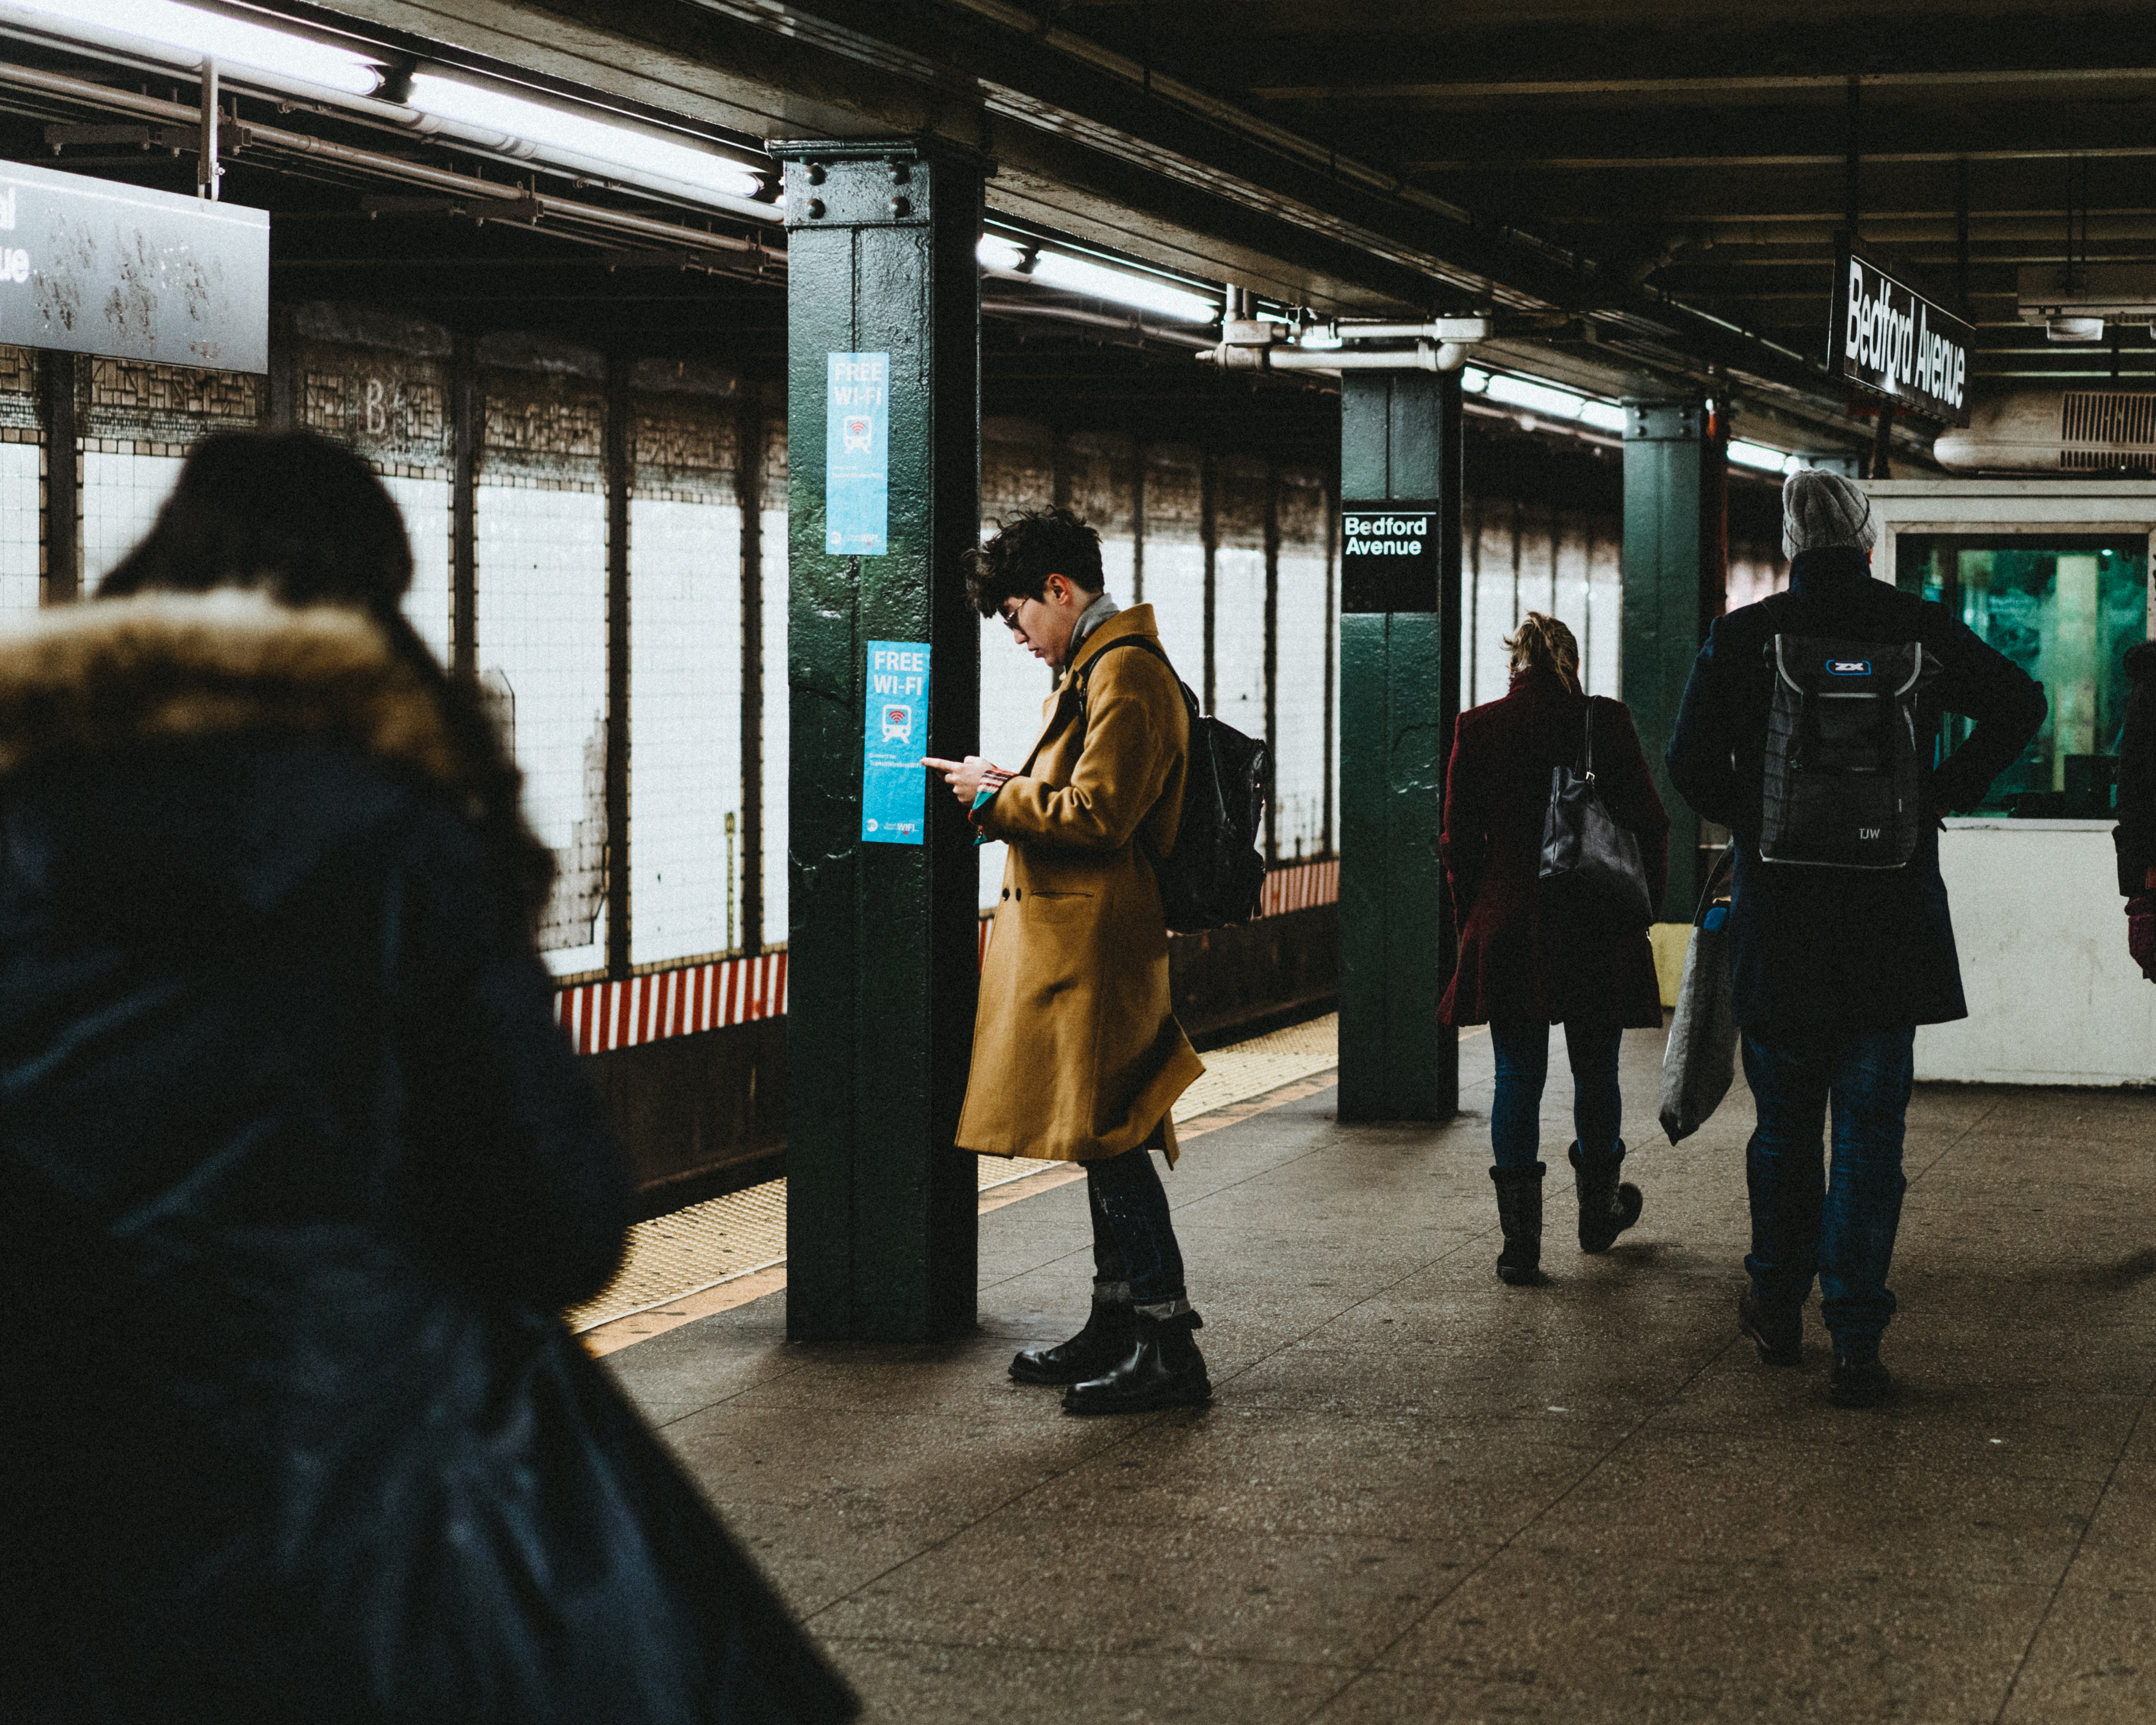 Commuters wait at the subway platform for their trait to work